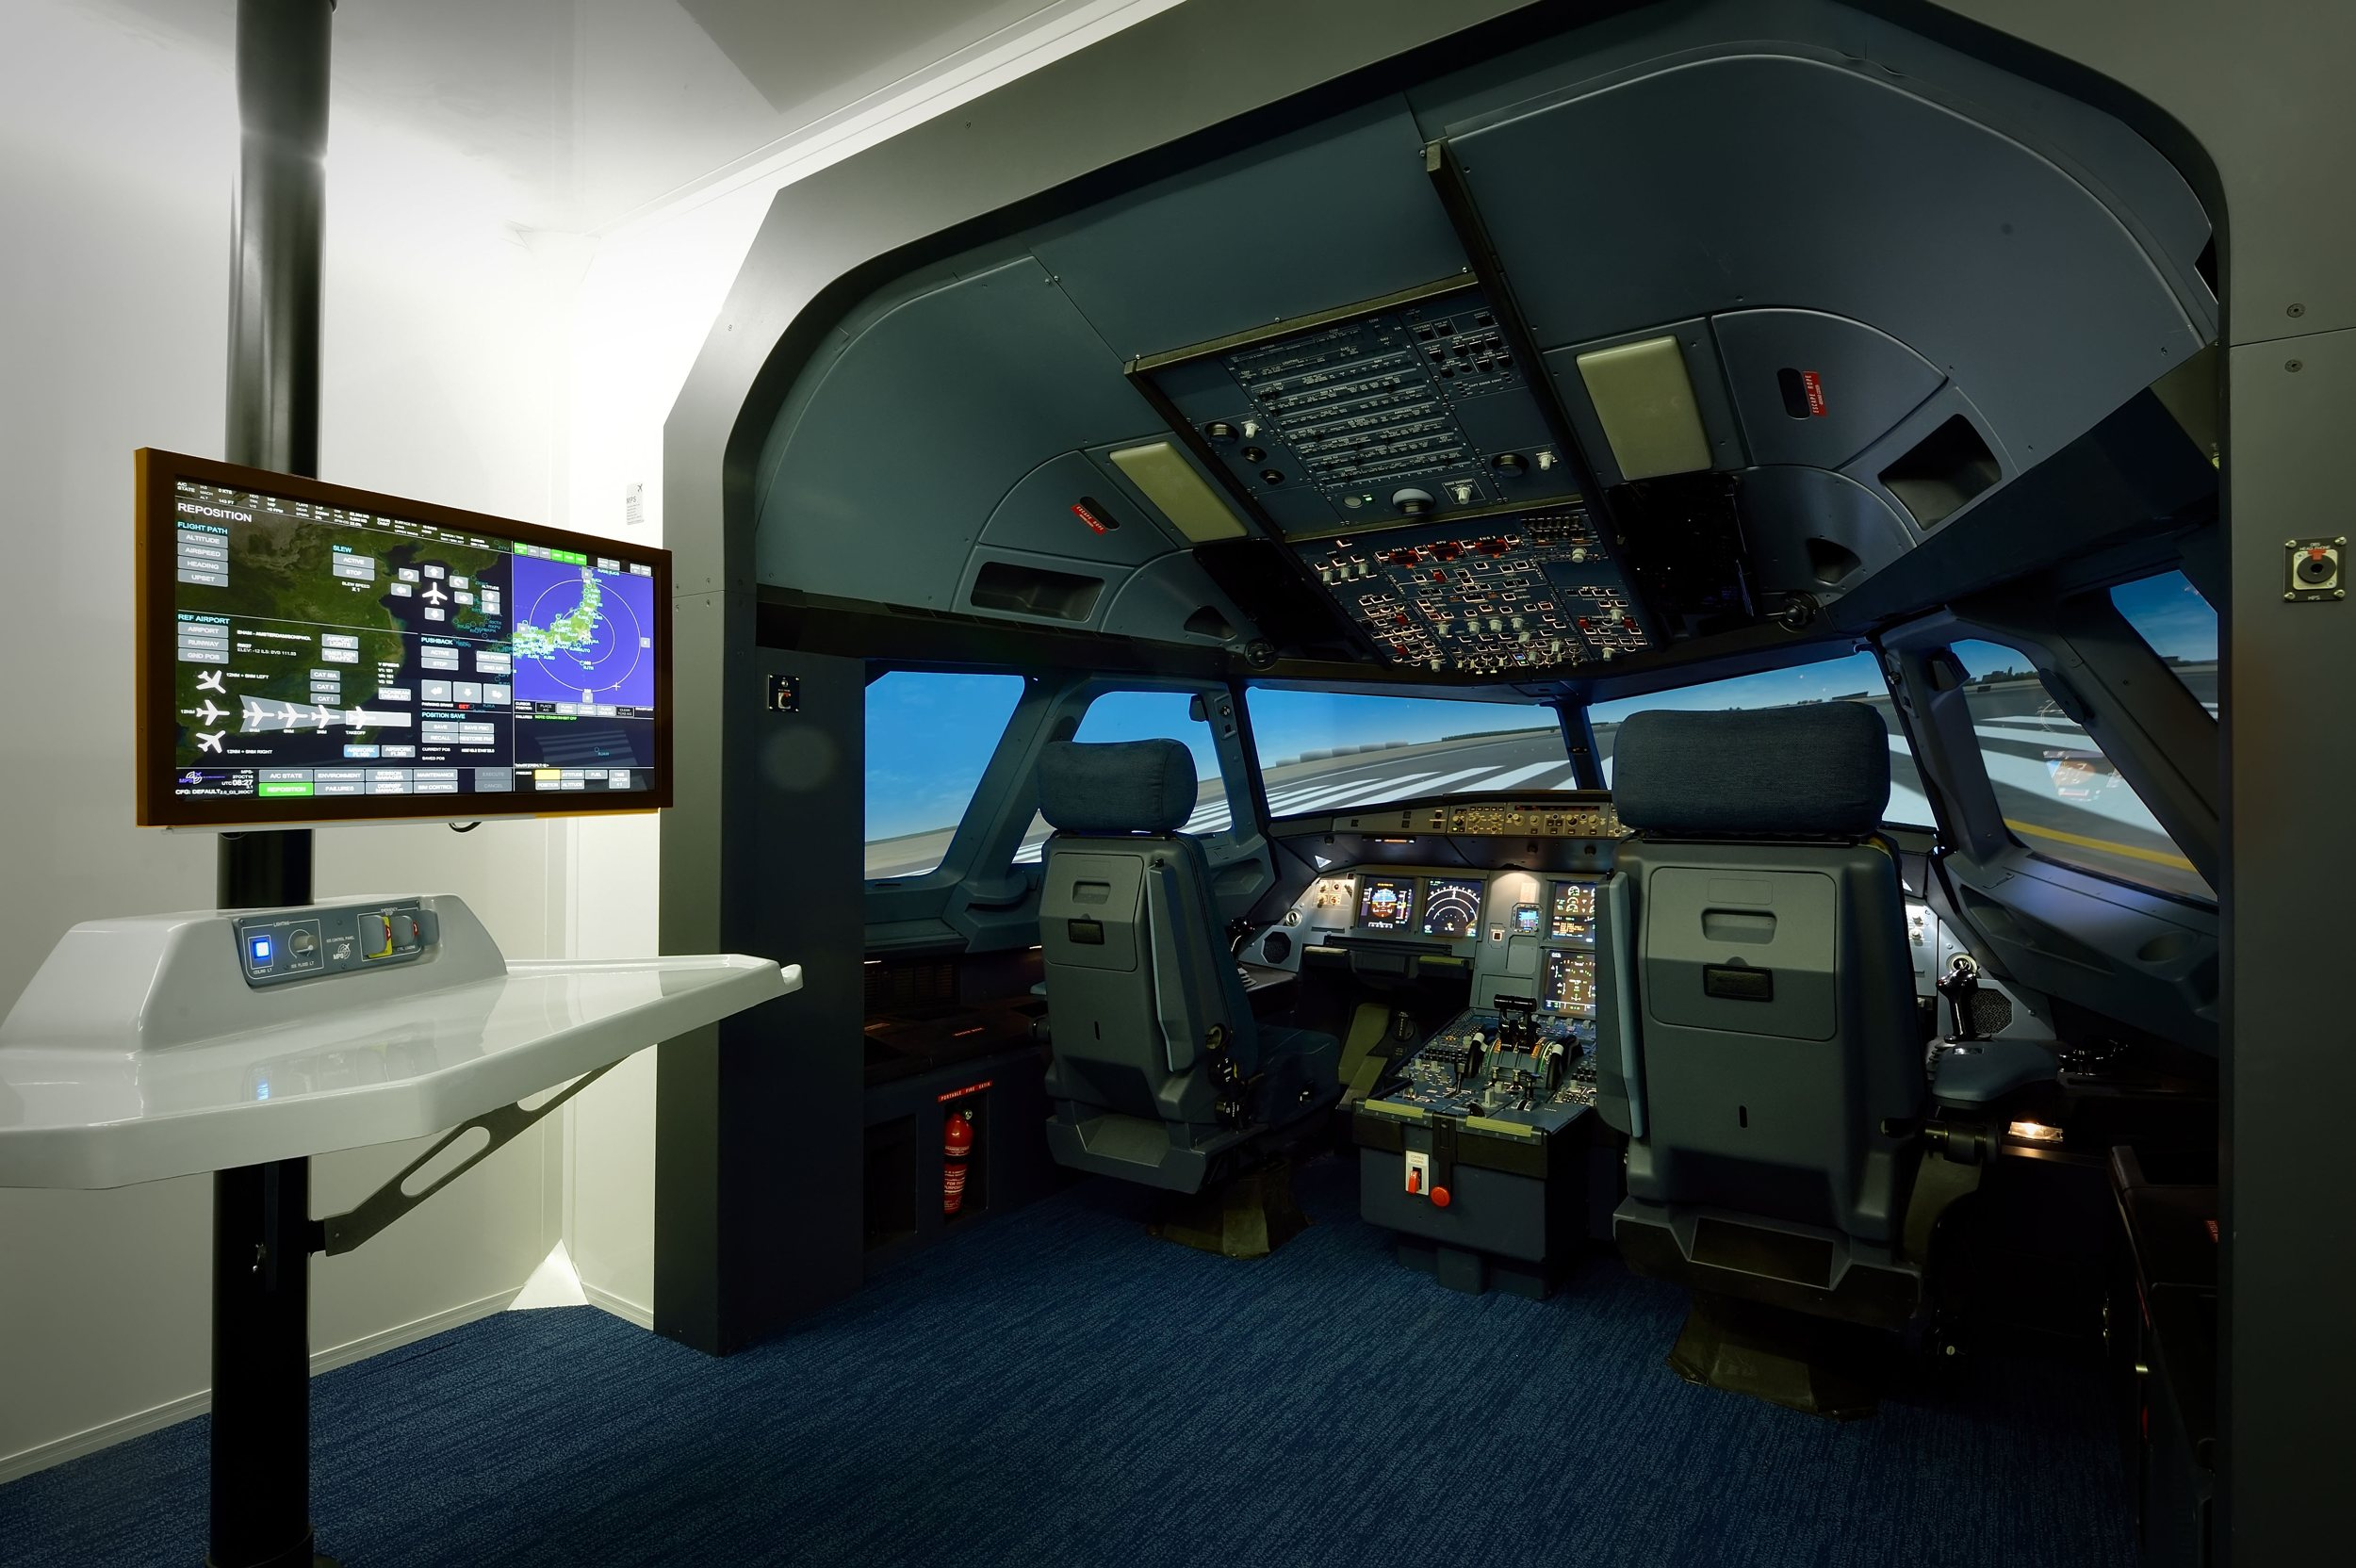 A320 flight simulator